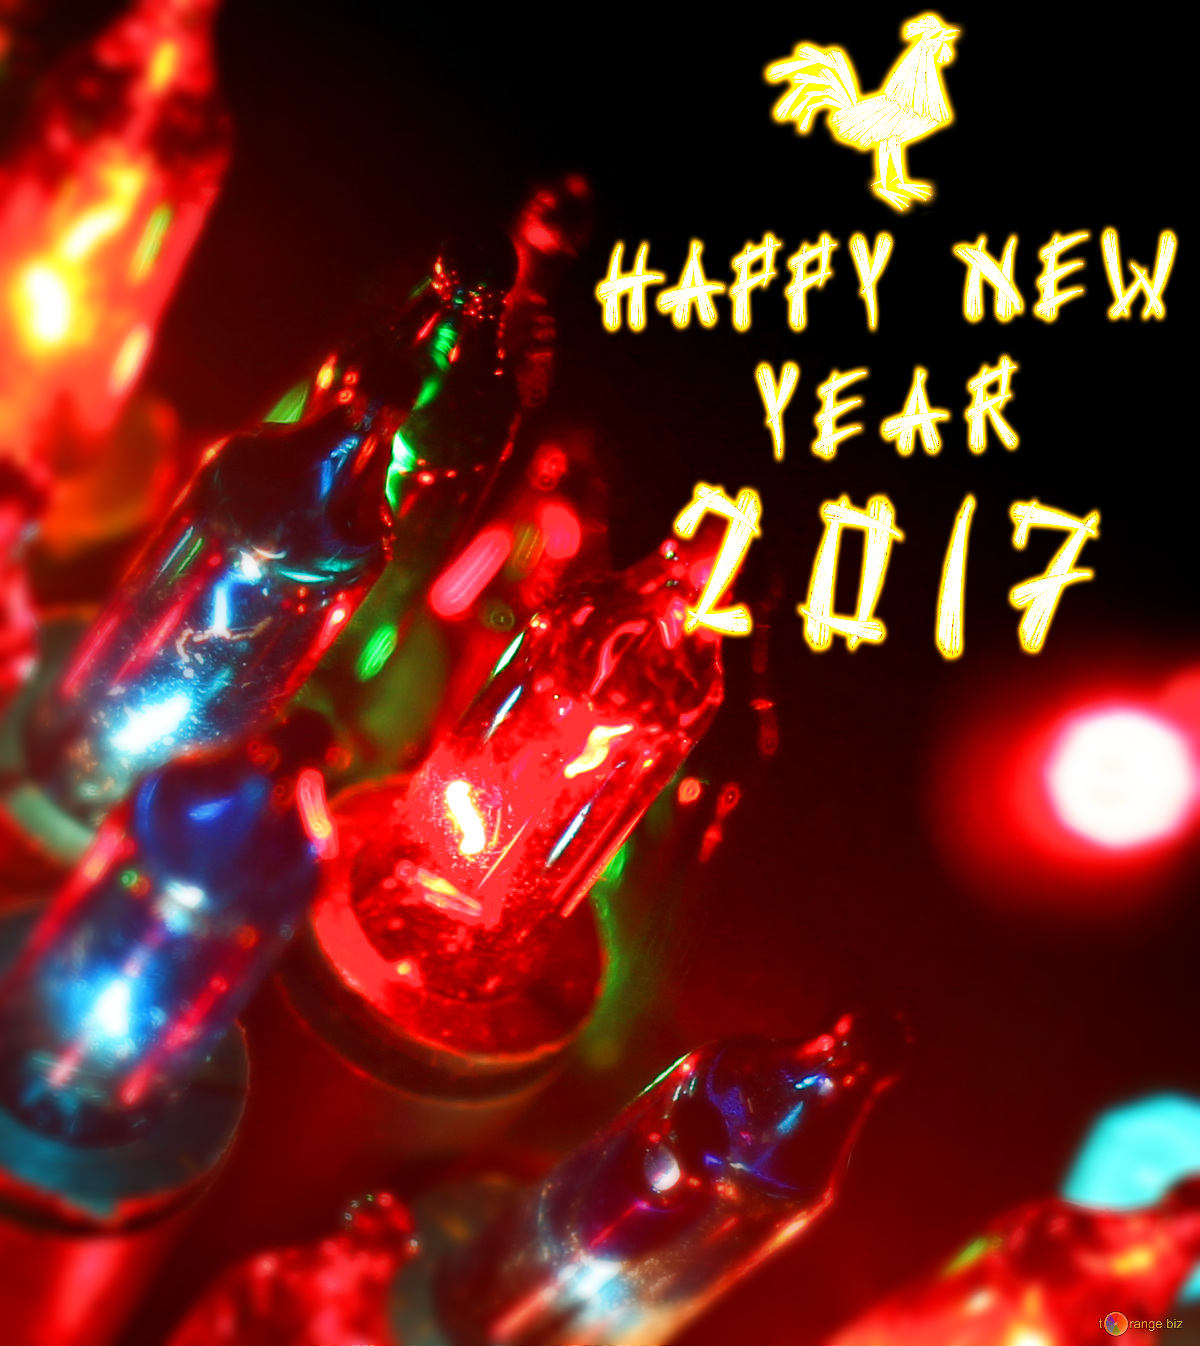 Happy New Year 2017 Quotes: Happy New Year 2017 SMS, Images, Quotes Wishes